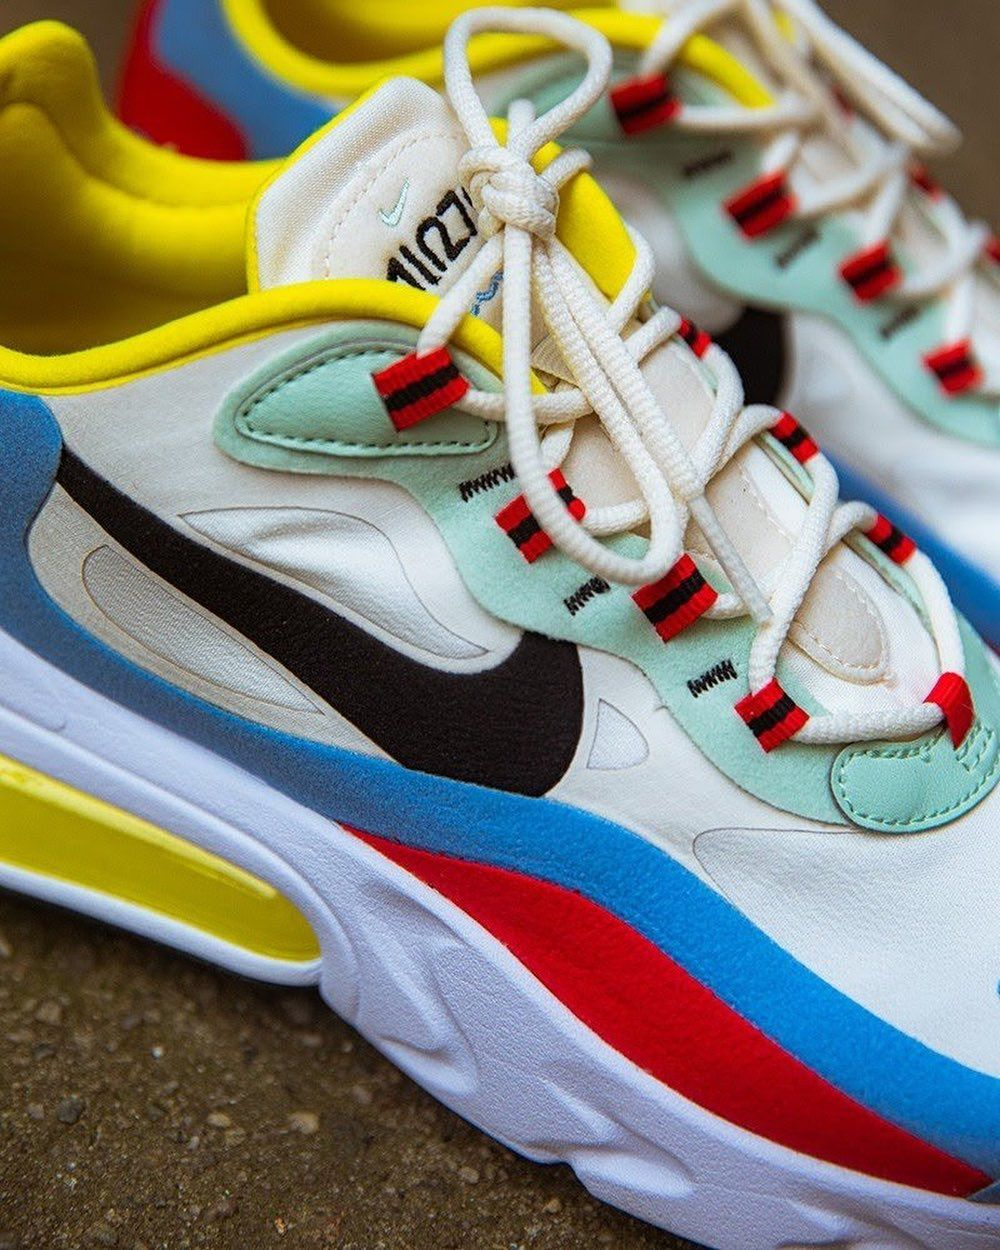 low price best sneakers look out for The experimental approach that Nike has undertaken in recent ...